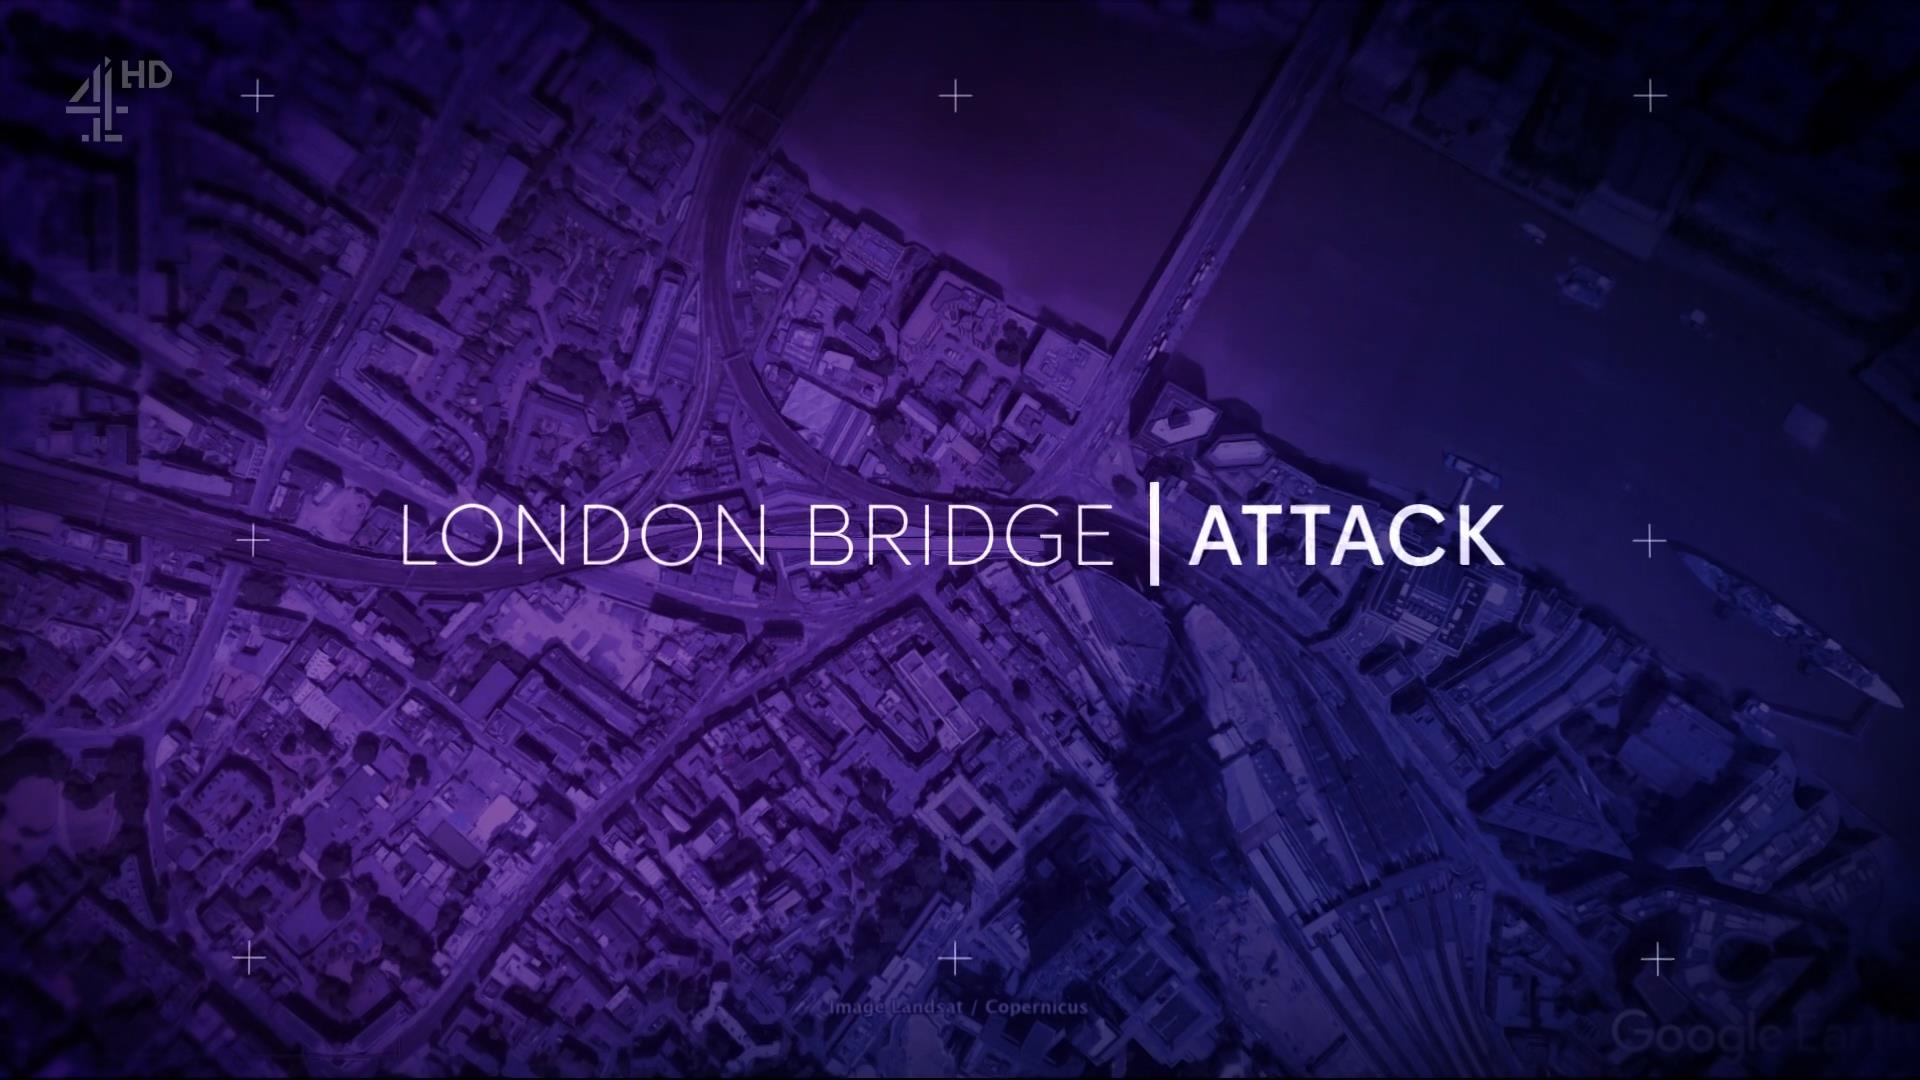 Images - Channel 4 News London Bridge Attack (6)